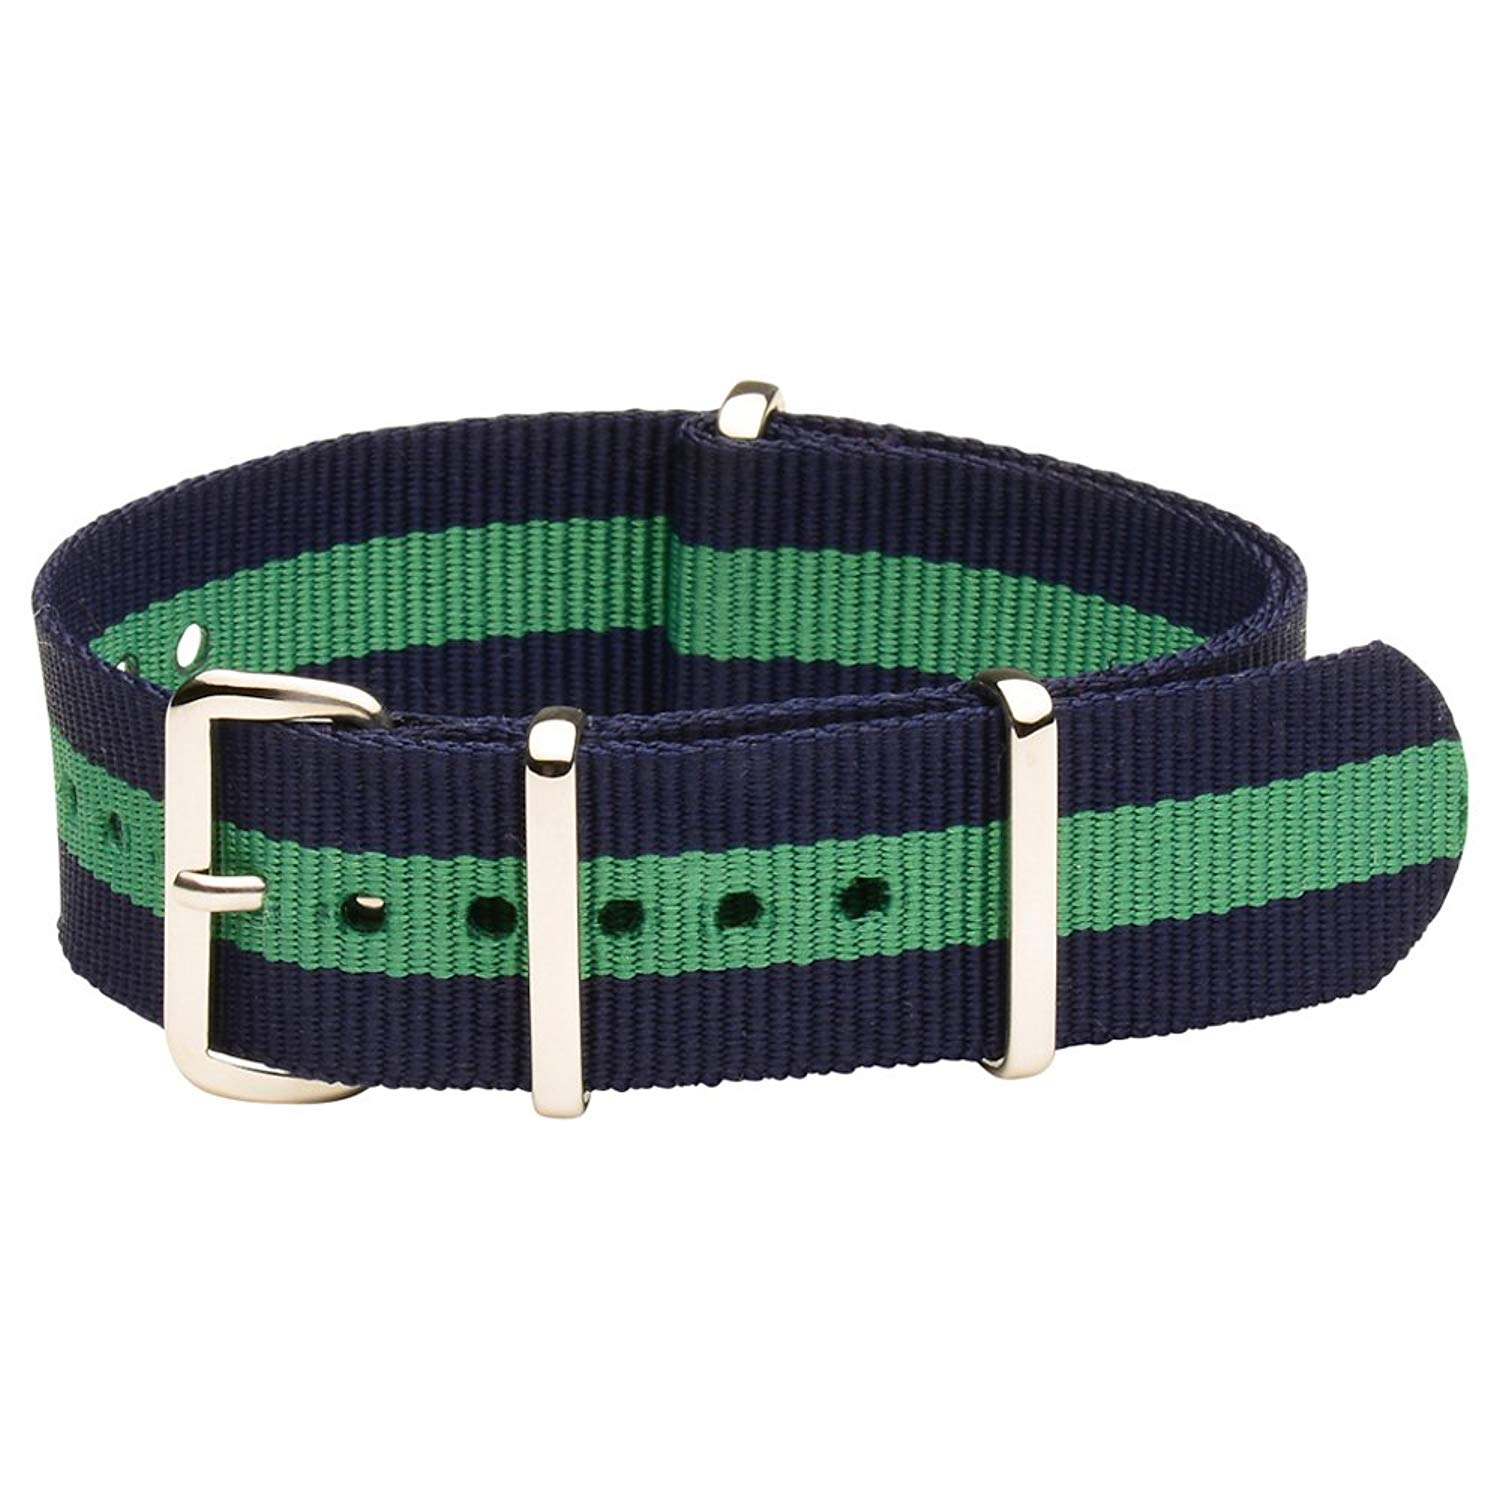 NATO G10 Nylon Premium Quality Replacement Watch Band Strap - 22mm / Navy Blue Green Stripe - FITS ALL BRAND WATCHES